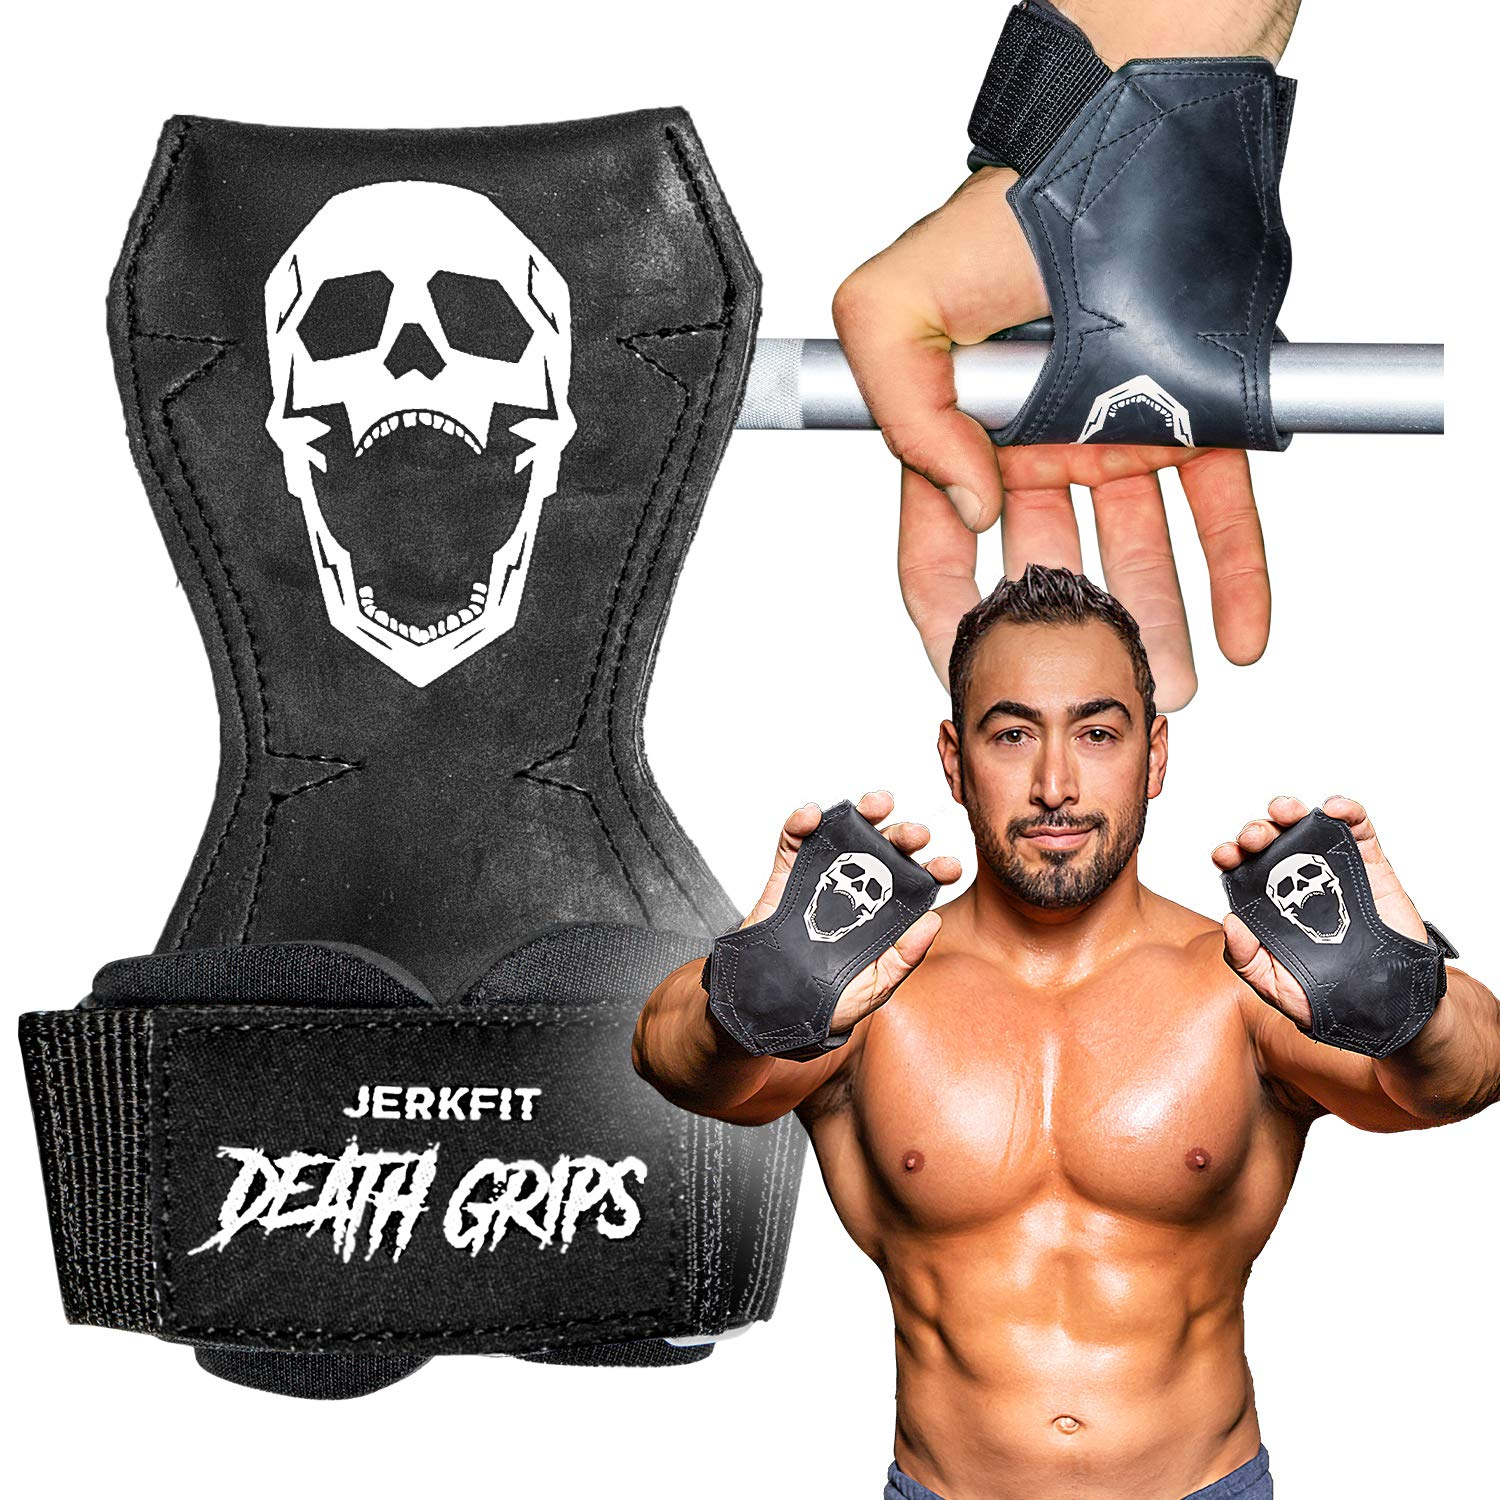 JerkFit Death Grips, Ultra Premium Lifting Straps for Dead Lifts, Pull-UPs, and Heavy Shrugs (Small) by JerkFit